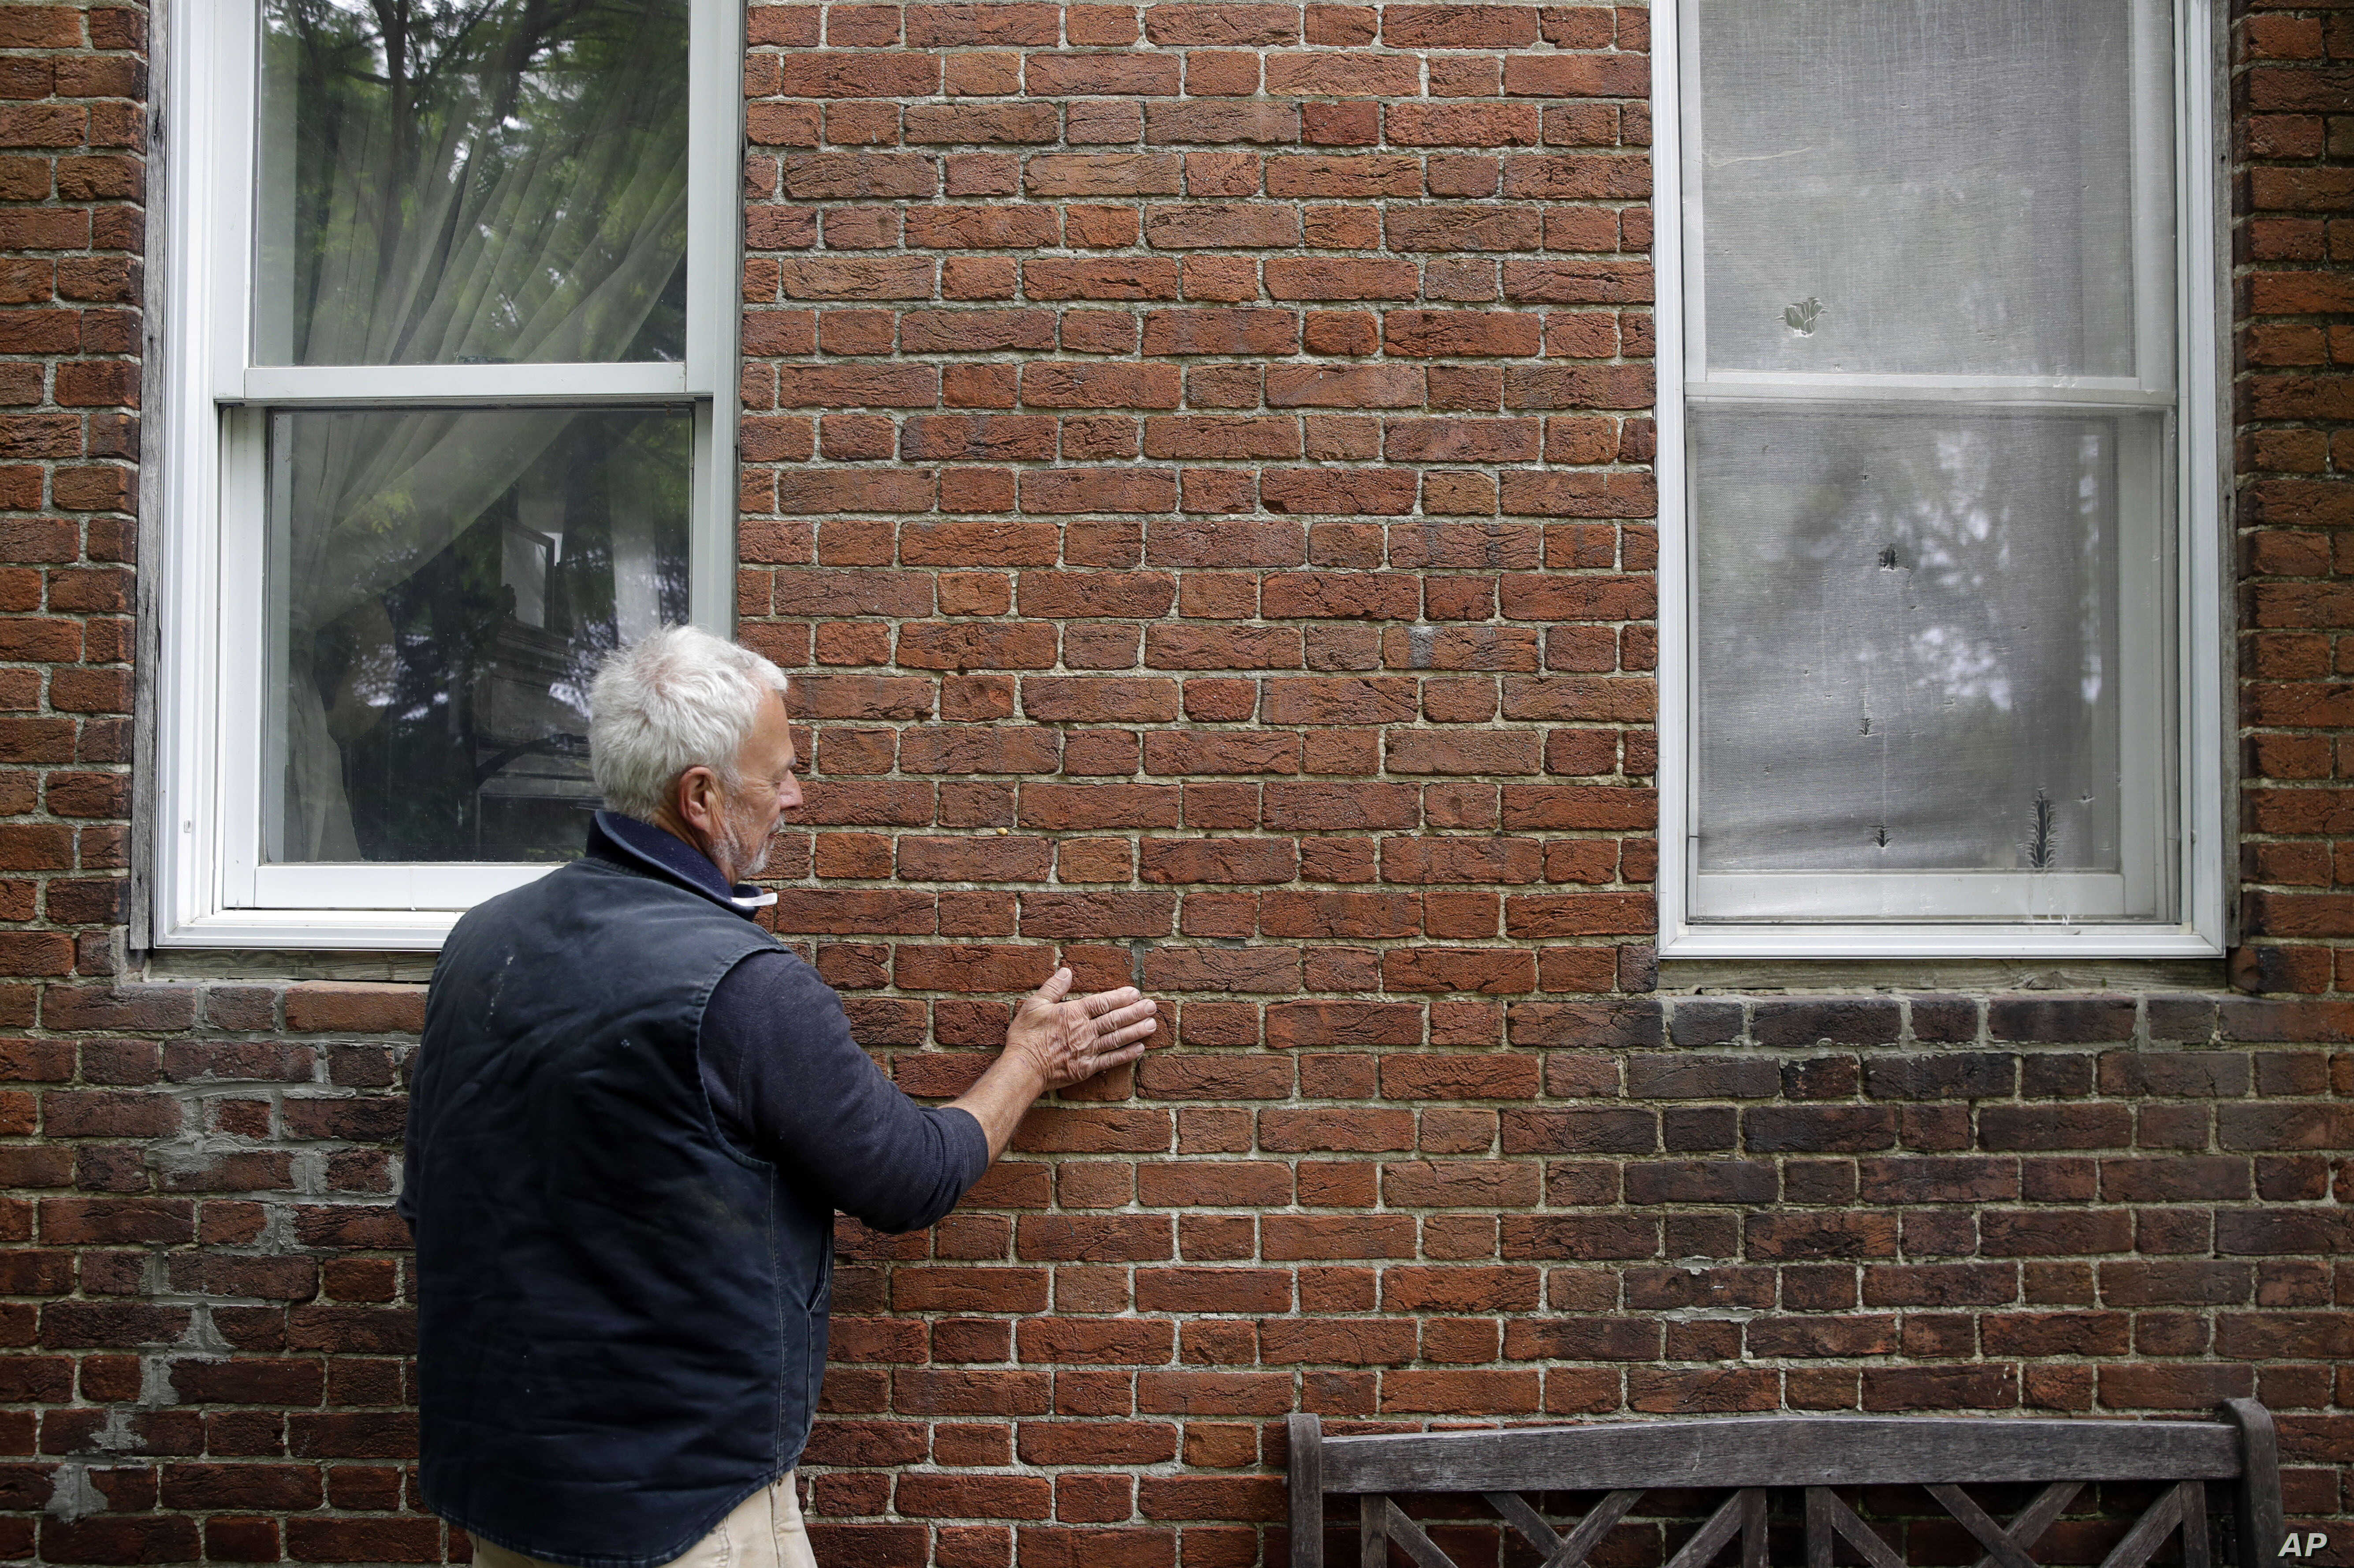 Michael McCrea shows where people have come to touch his house, the former home of Jacob and Hannah Leverton, once a key stopping point for slaves seeking sanctuary on the Underground Railroad in Preston, Maryland, May 12, 2017.